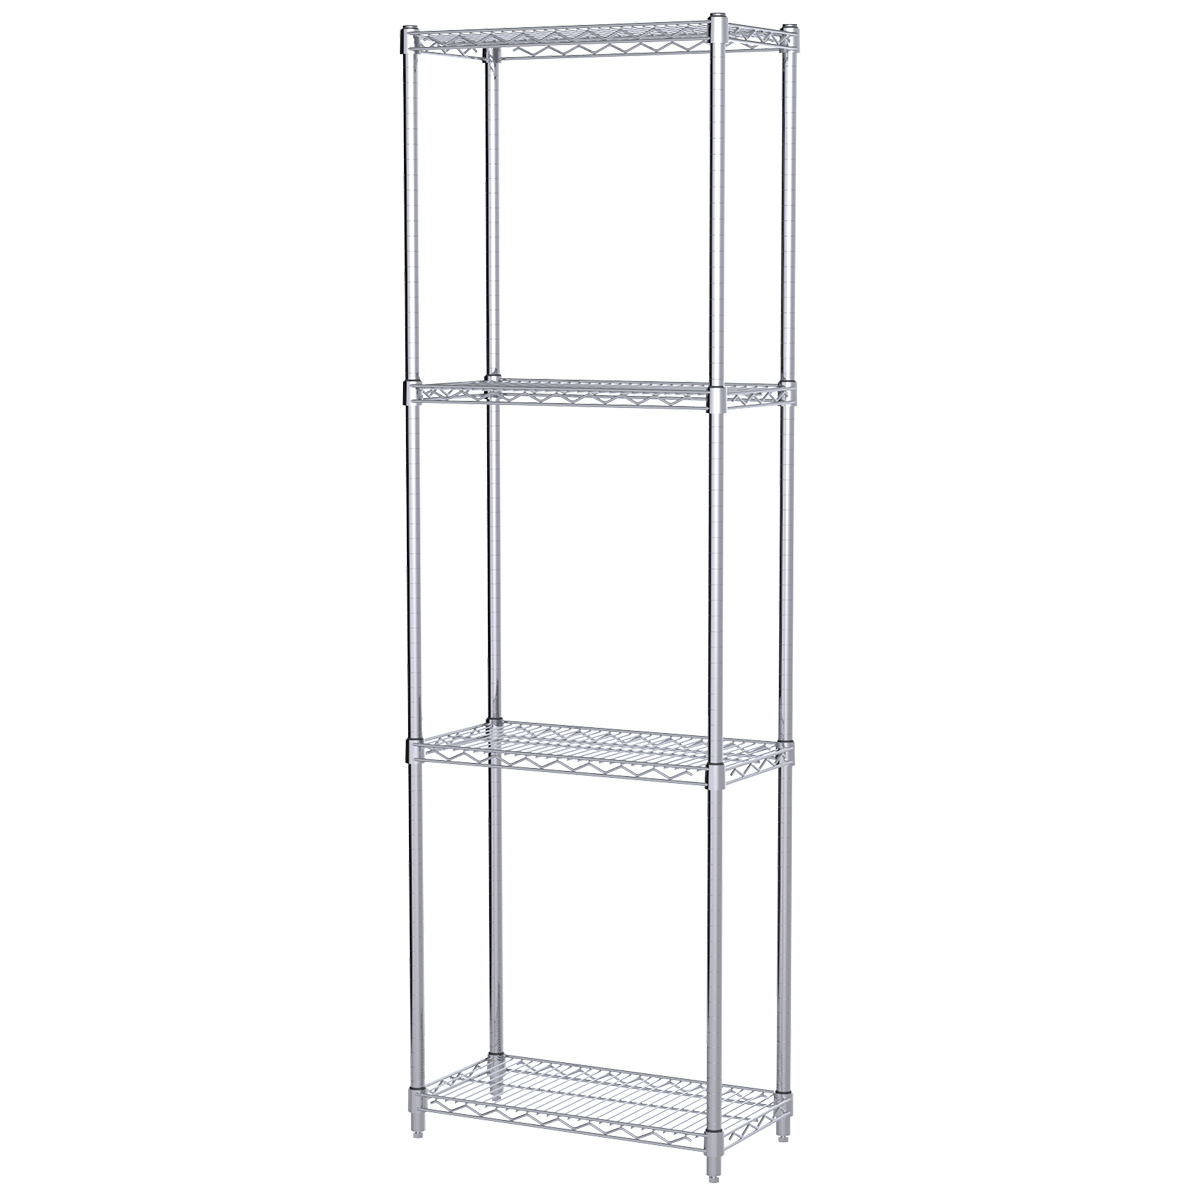 12x24x74, 4-Shelf Wire Shelving Starter Unit, Chrome.  This item sold in carton quantities of 1.